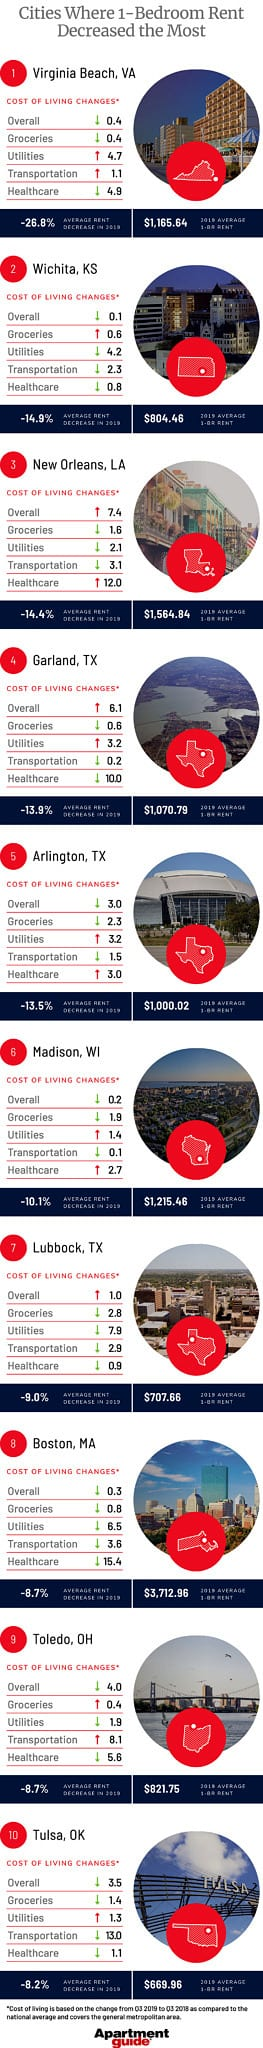 Average Electric Bill For 1 Bedroom Apartment In Nj | www ...